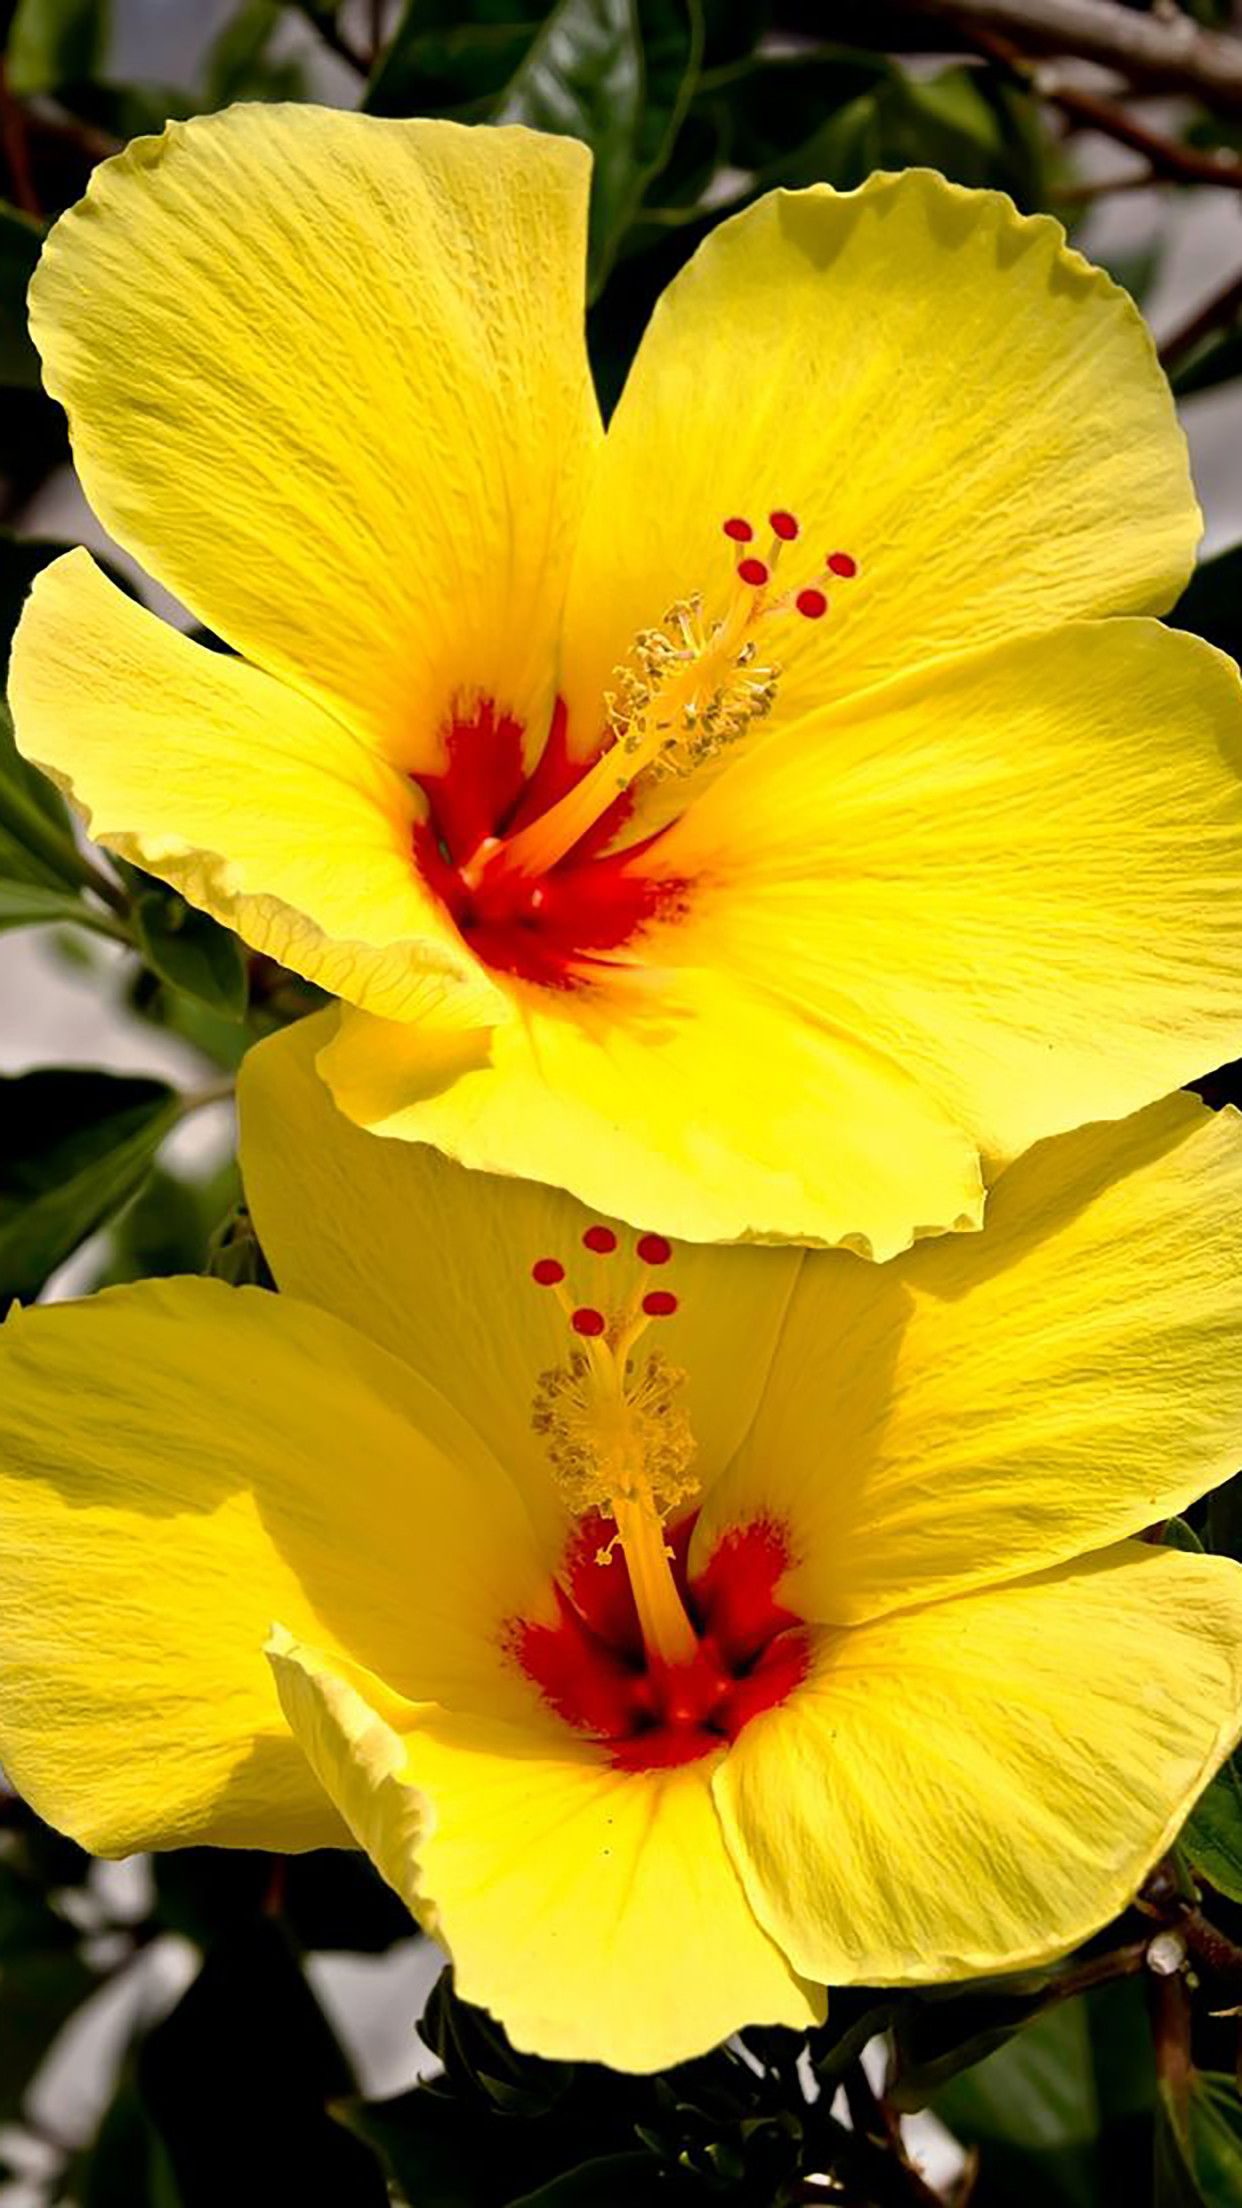 Hibiscus Flower Wallpaper For Iphone 3d Wallpapers Amazing Flowers Hibiscus Plant Yellow Hibiscus